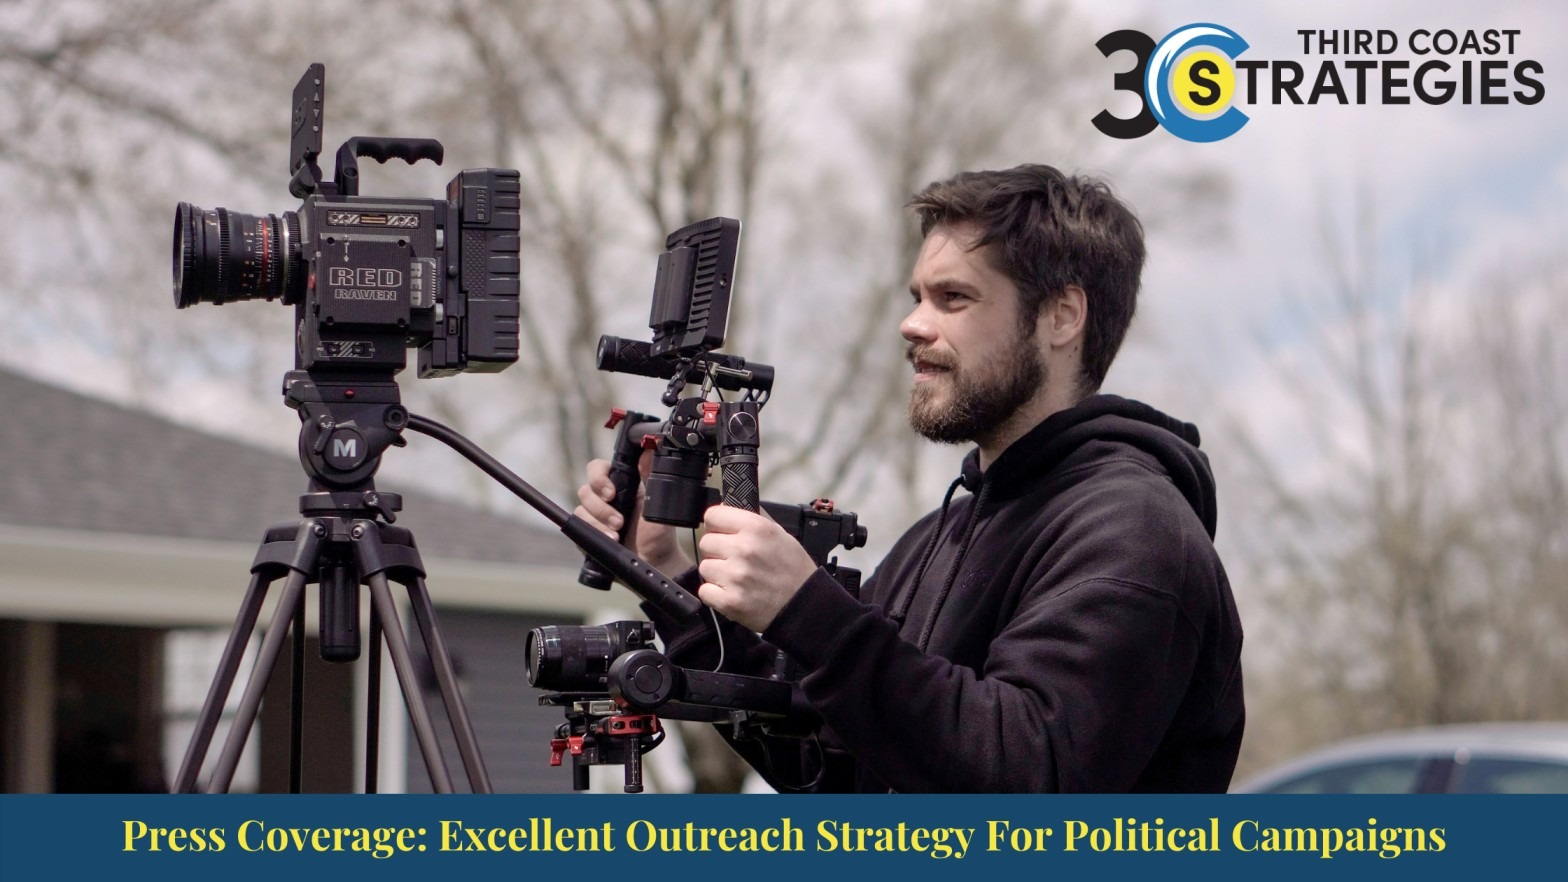 Press Coverage: Excellent Outreach Strategy For Political Campaigns